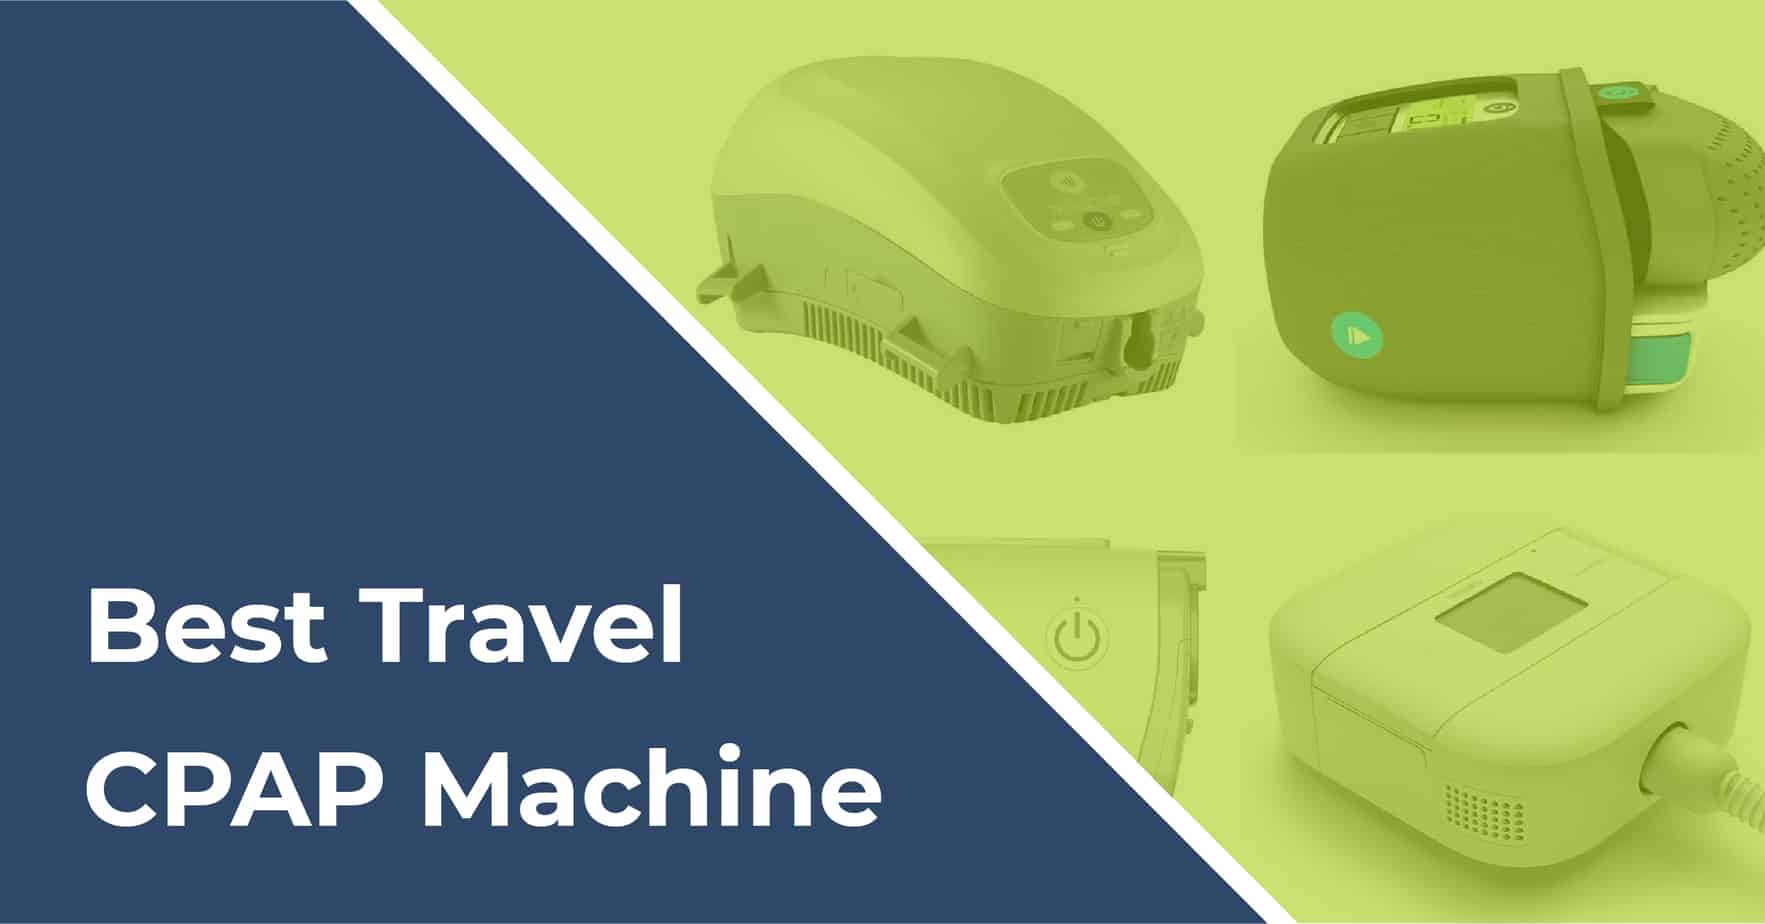 Cpap Machine Reviews >> Best Travel Cpap Machines 2019 Buying Guide Reviews